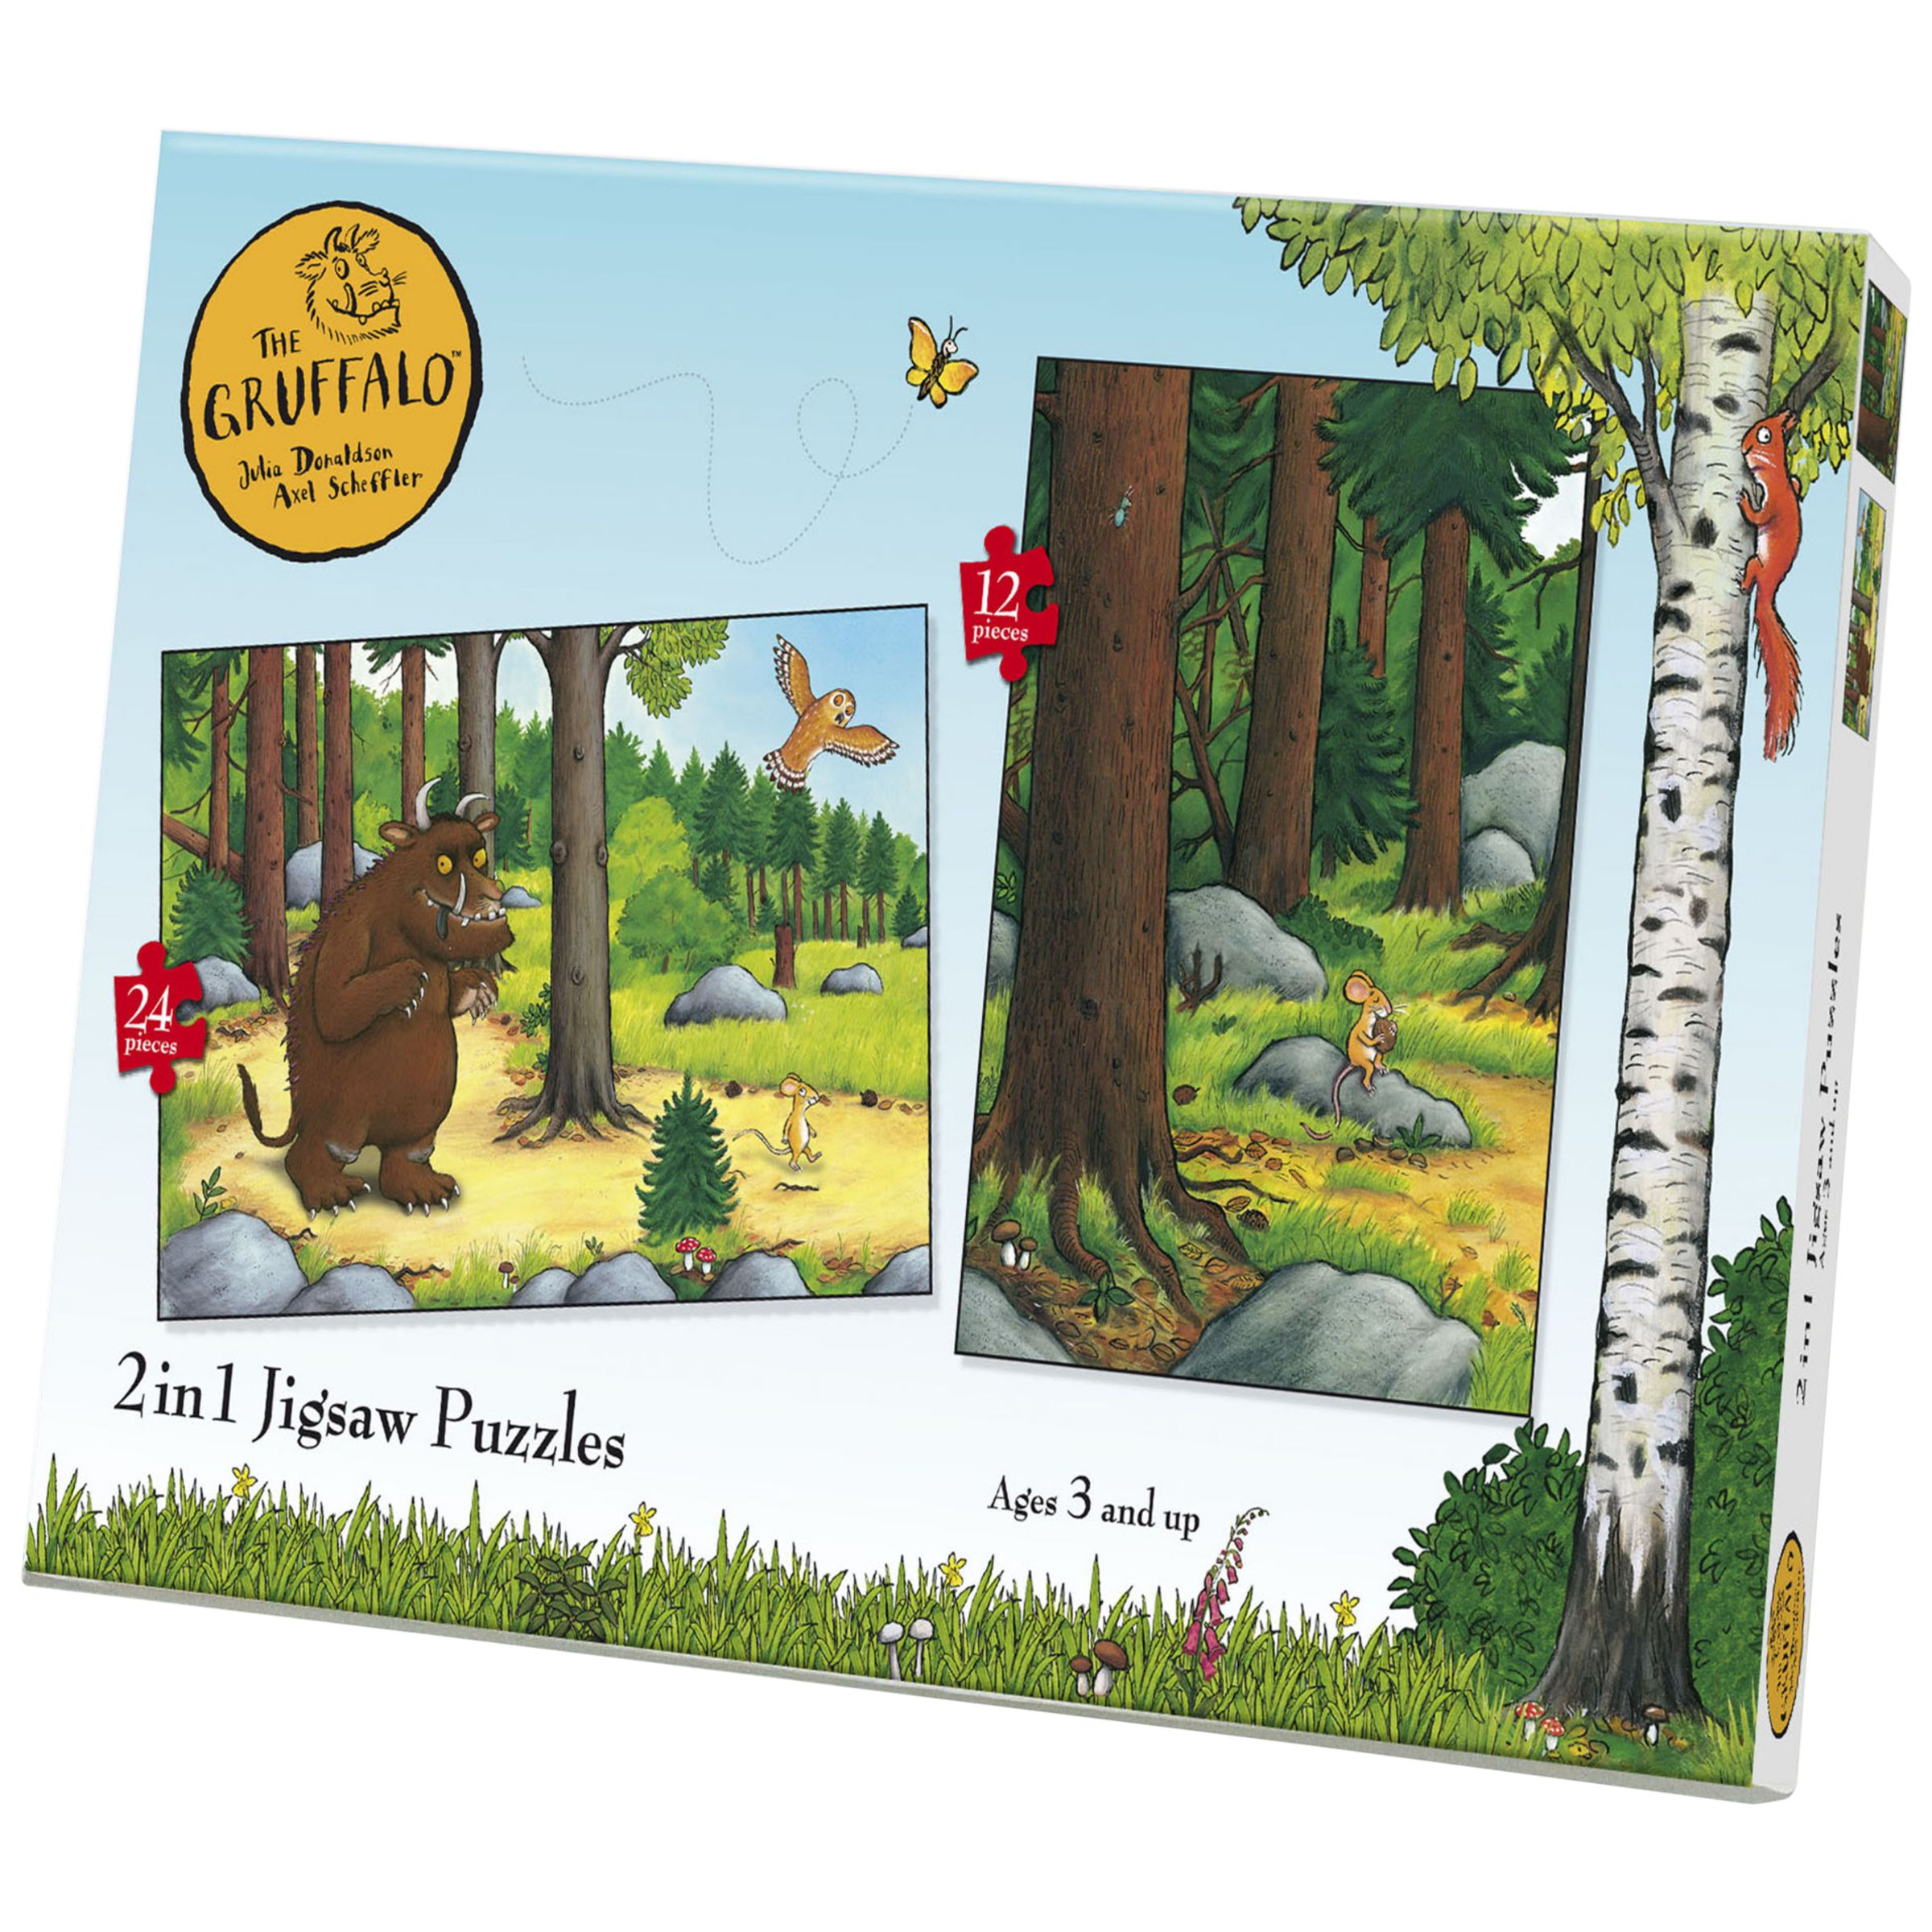 2 in 1 Gruffalo Jigsaw Puzzle, 24 Pieces 230653104